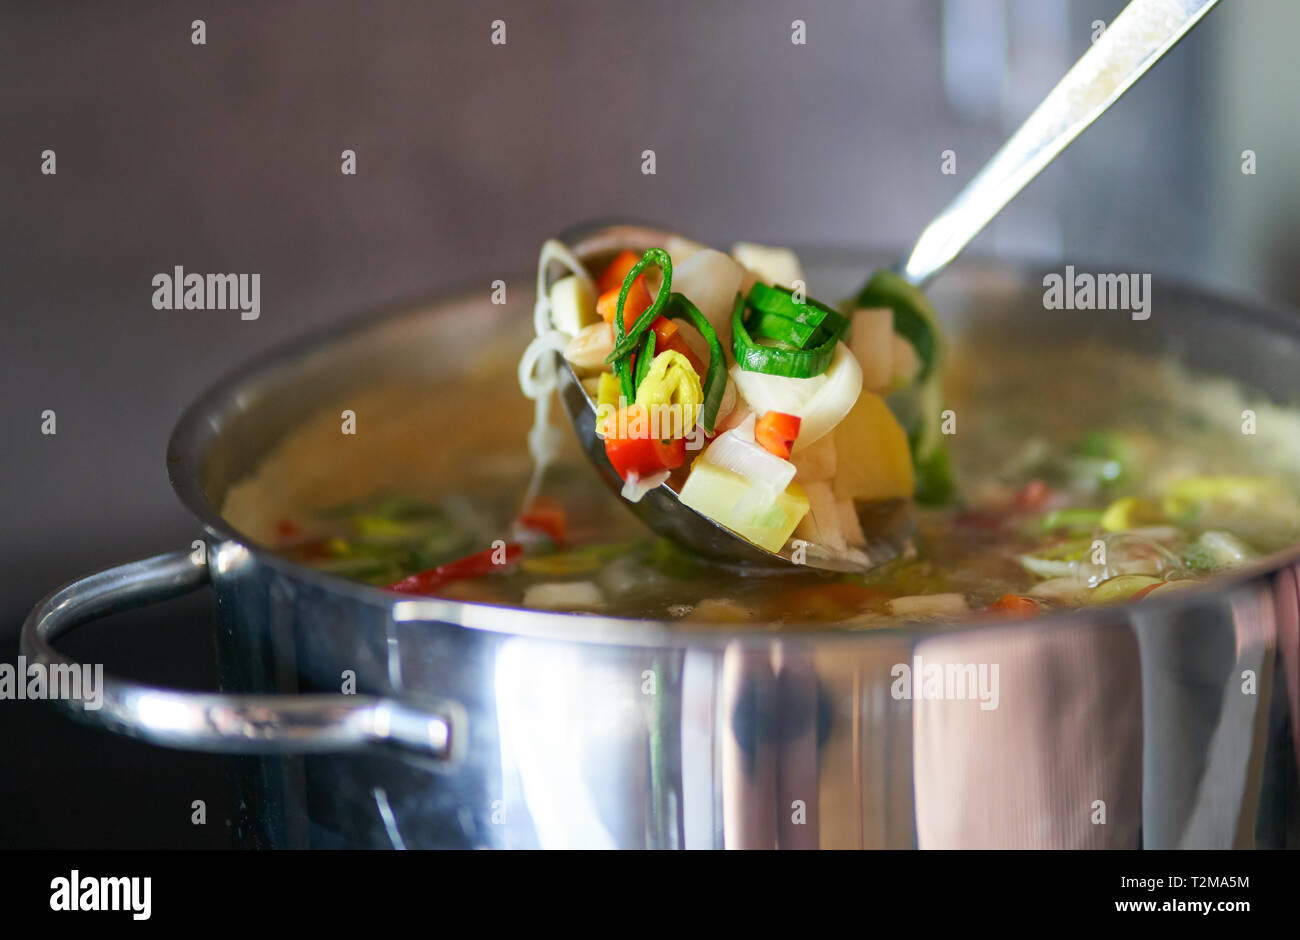 A hot vegetable soup is cooked and stirred in  Pfaffenhofen, April 28, 2019.  © Peter Schatz / Alamy Stock Photos Stock Photo